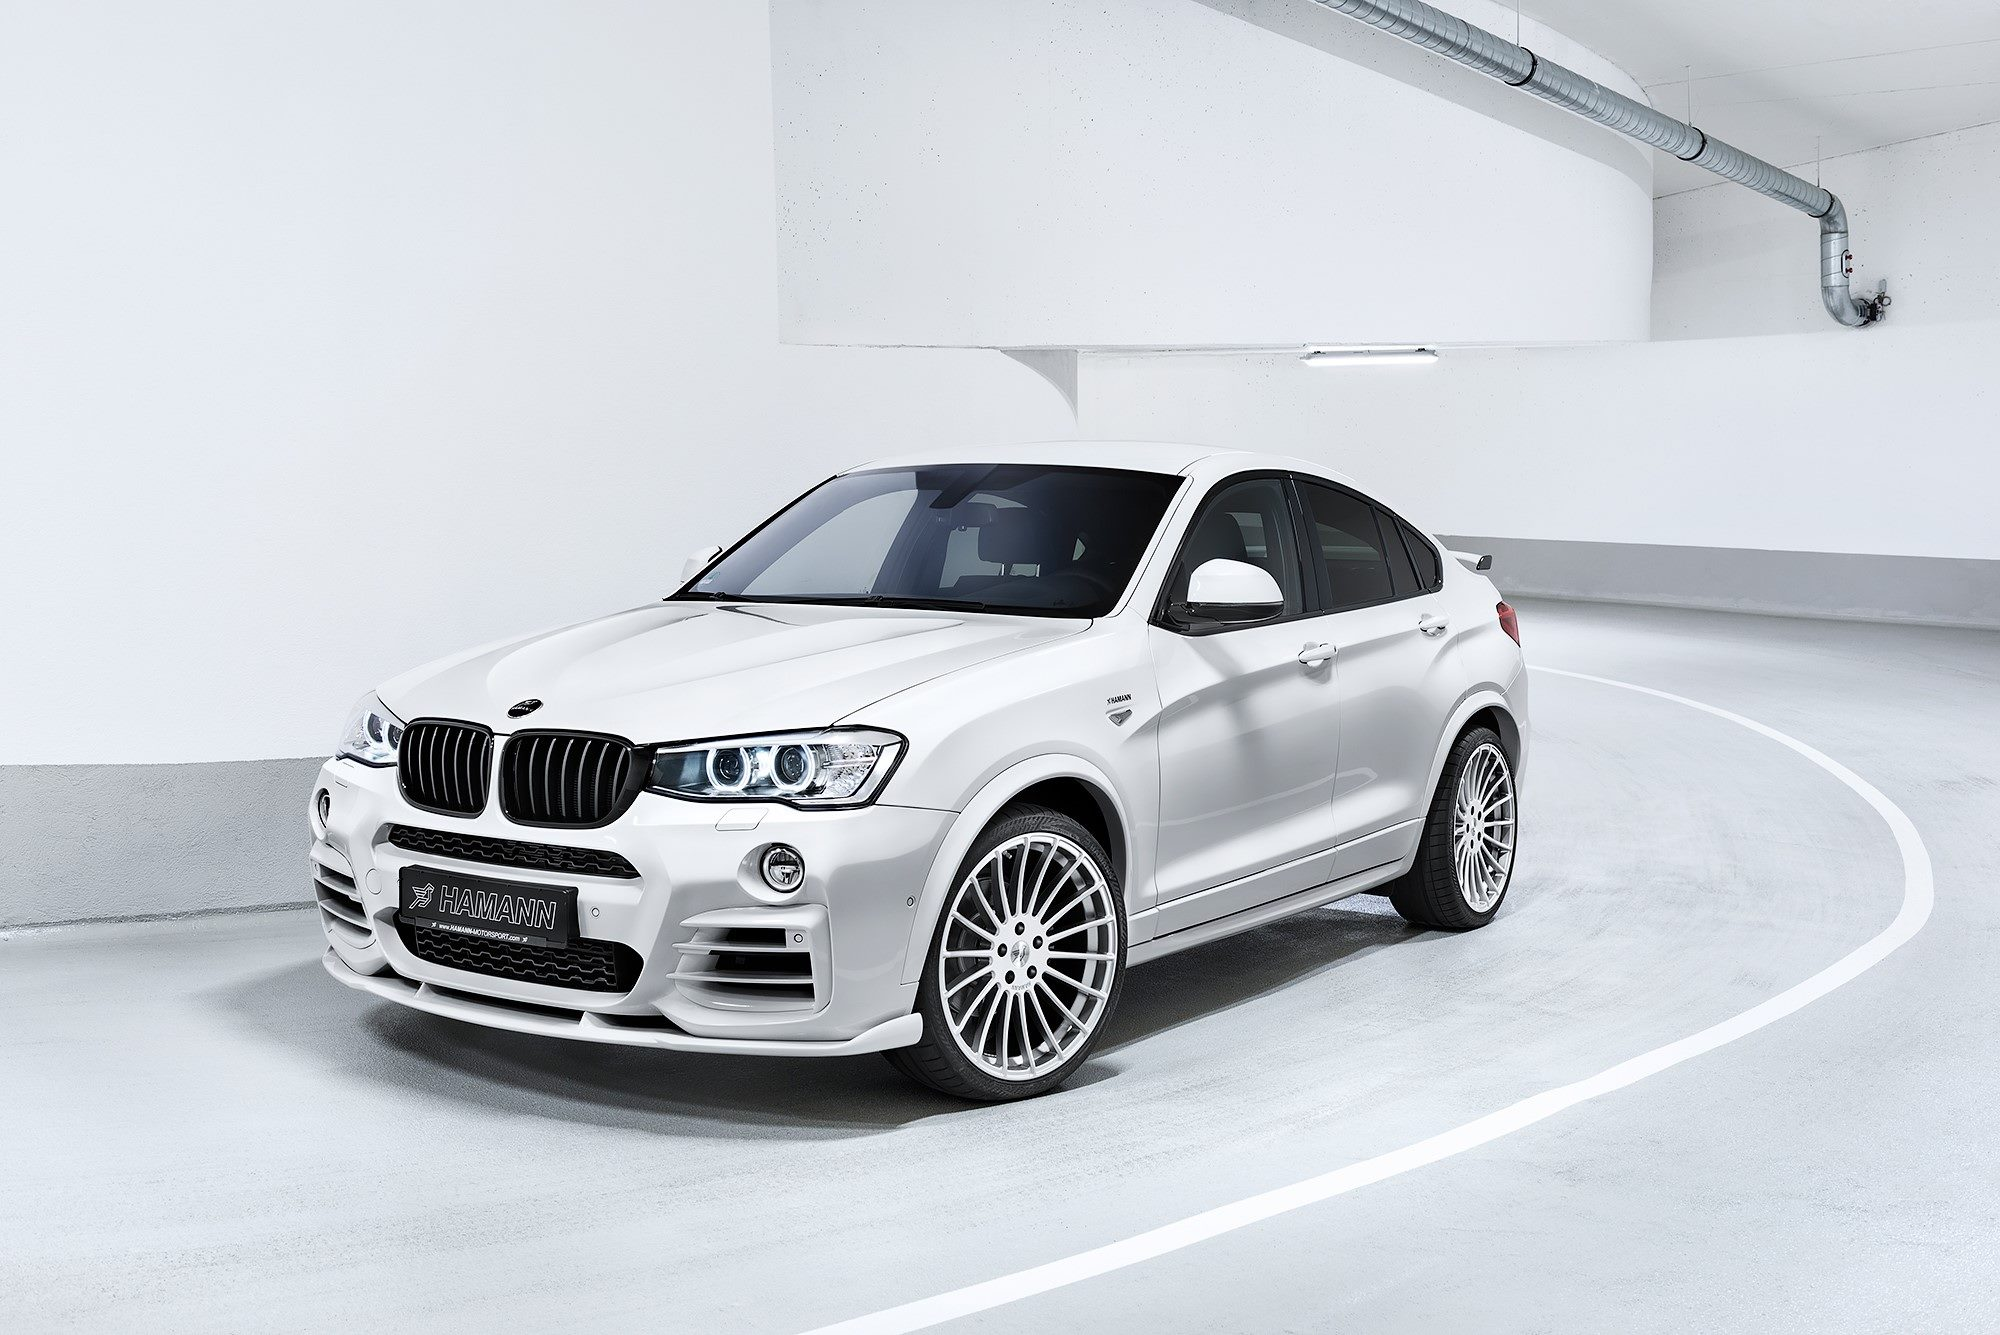 Performance Exhaust System >> Hamann gives 381 horsepower to BMW X4 SUV